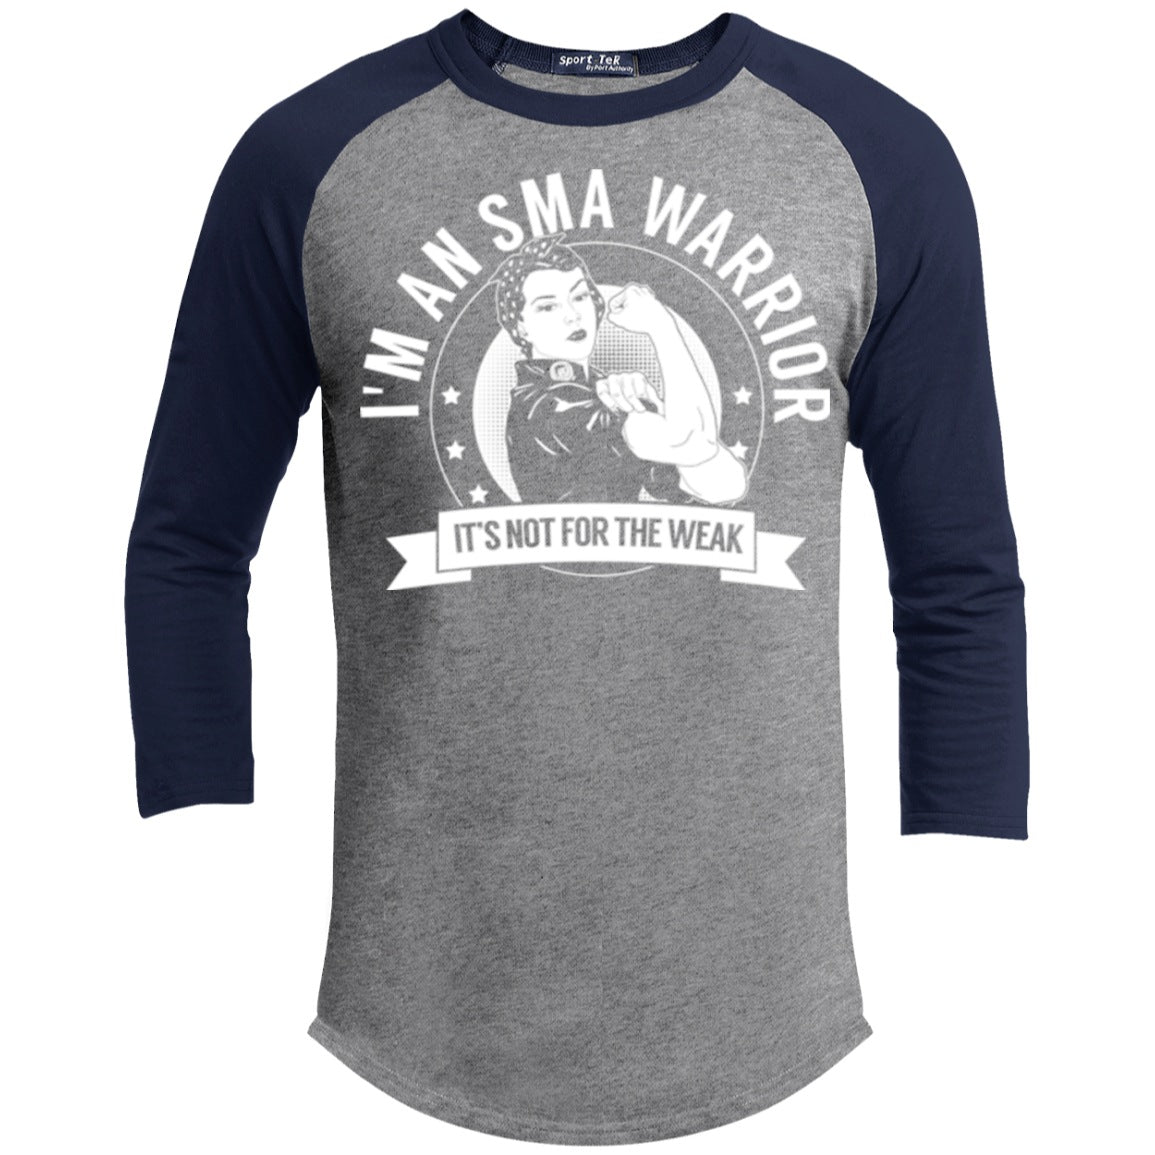 T-Shirts - Spinal Muscular Atrophy - SMA Warrior Not For The Weak Baseball Shirt